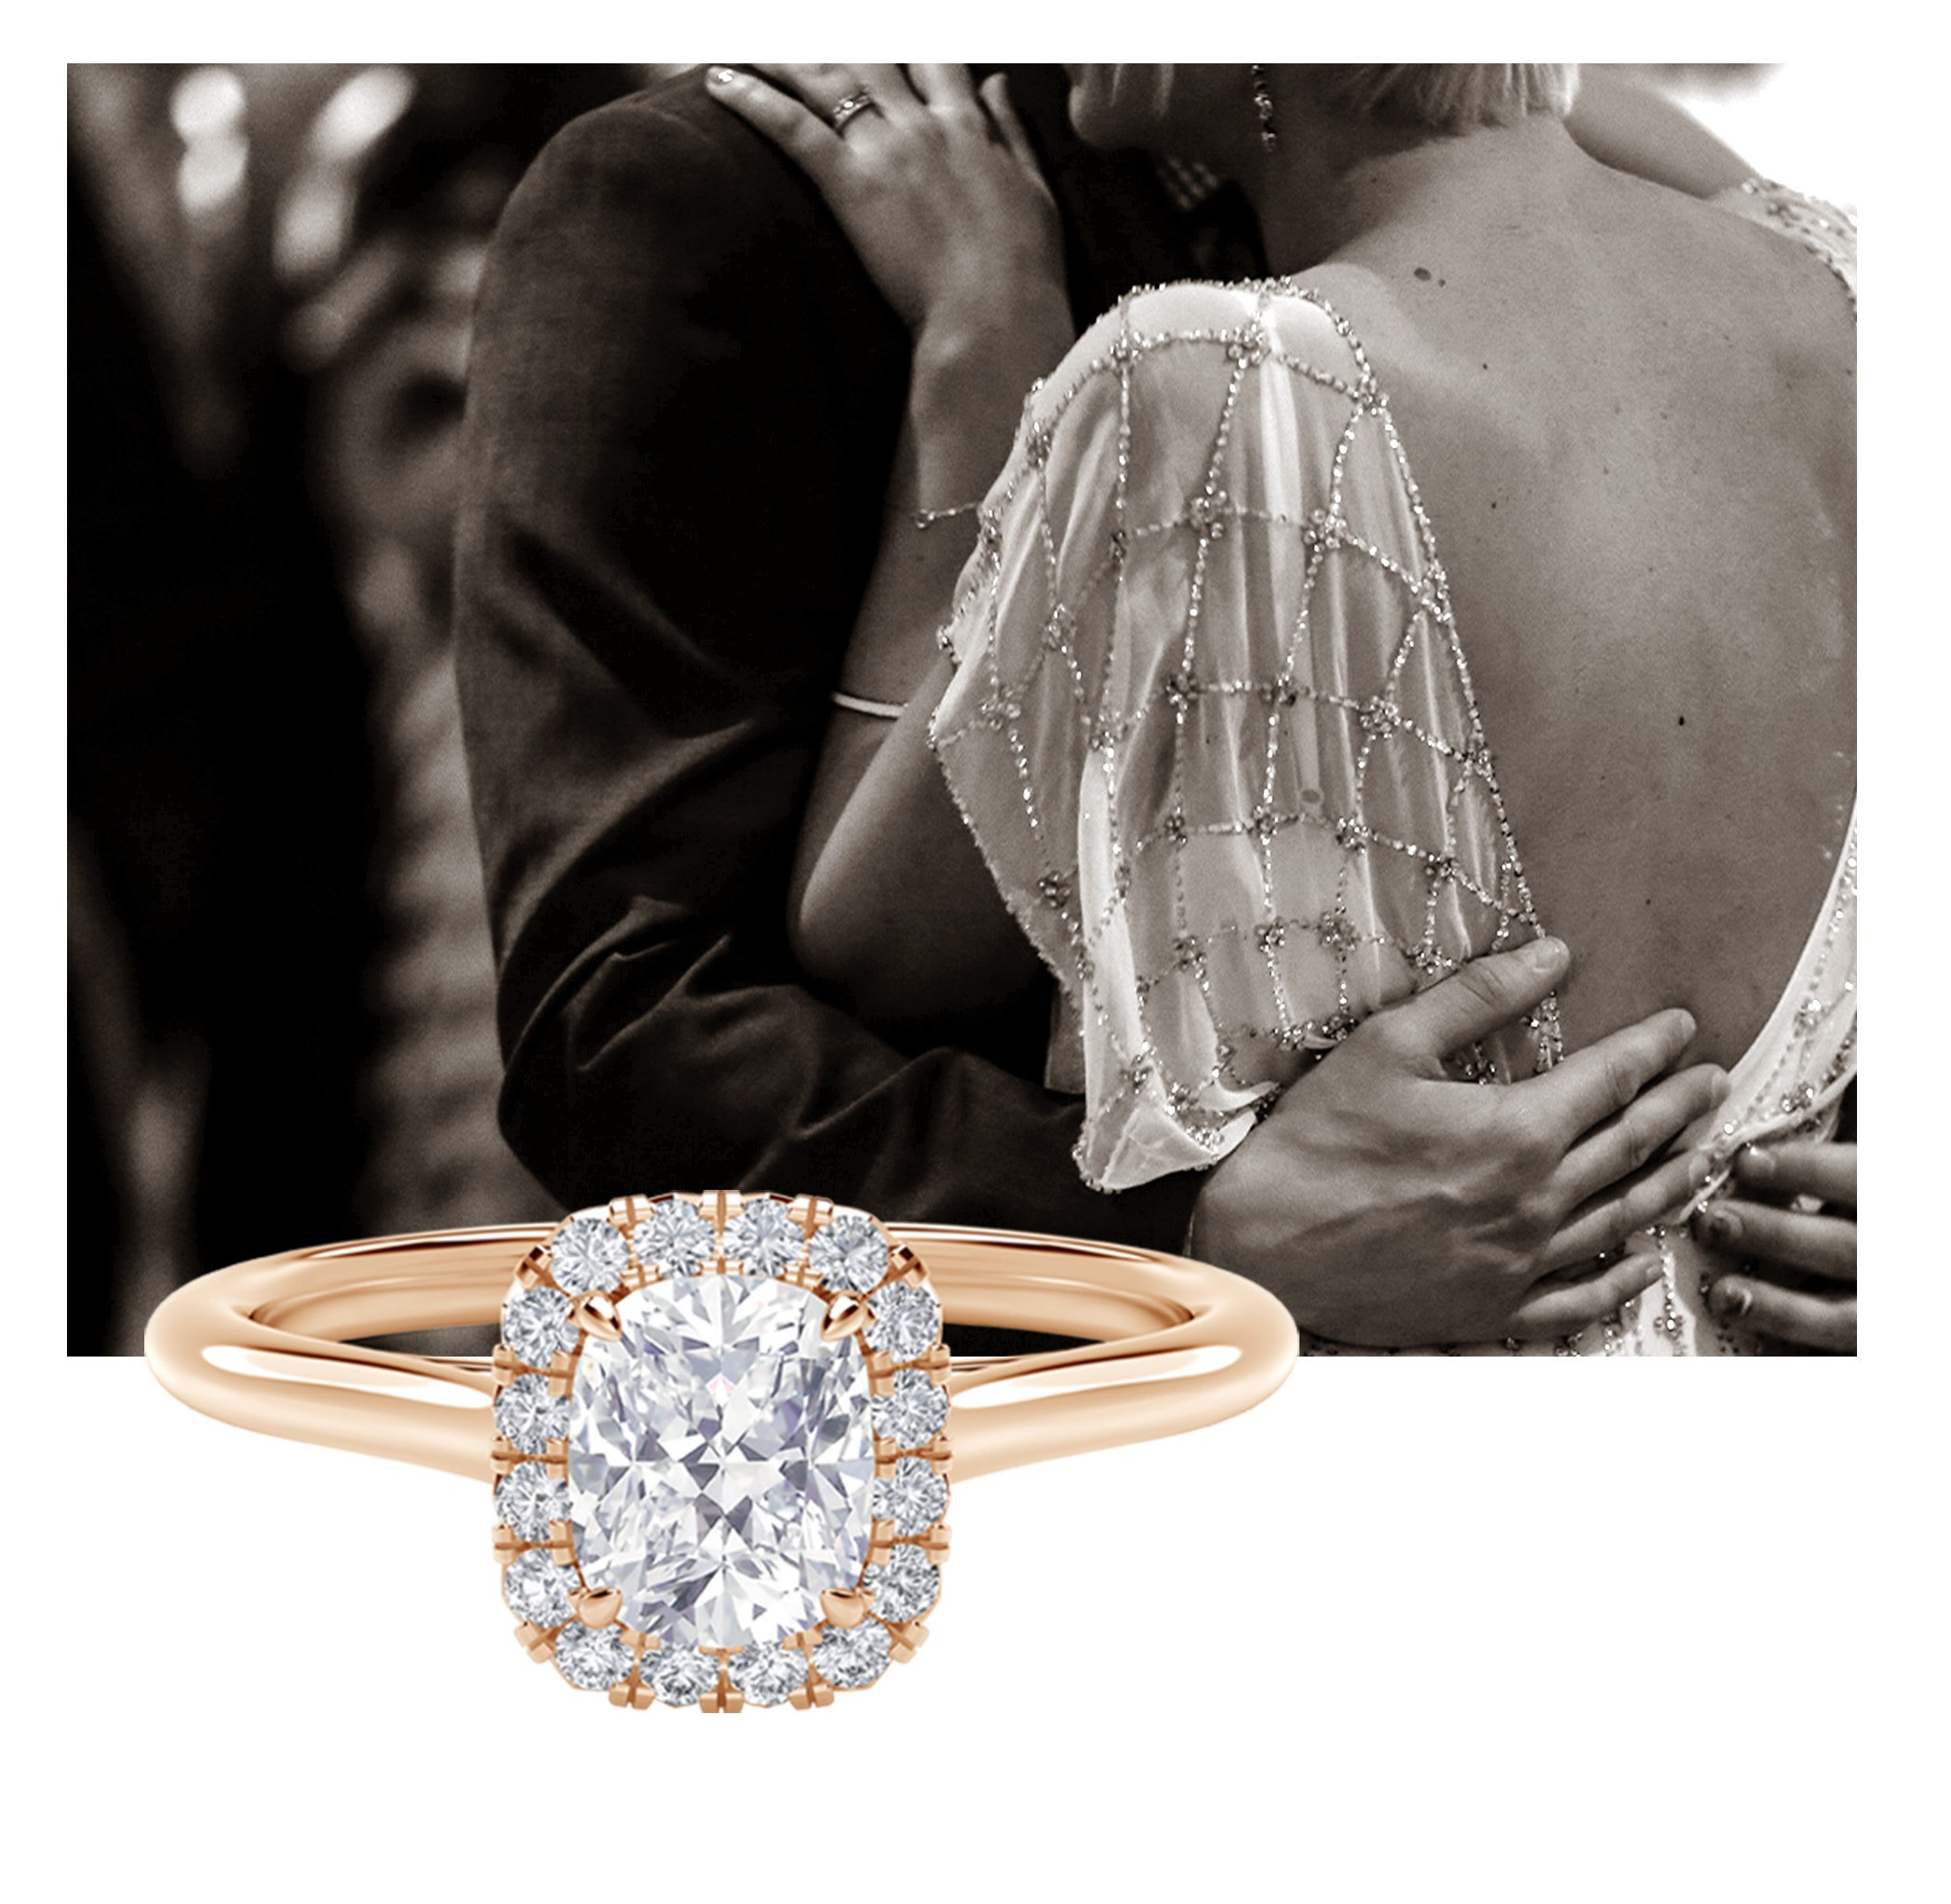 5 Engagement Ring Styles for Your Modern-Day Love Story